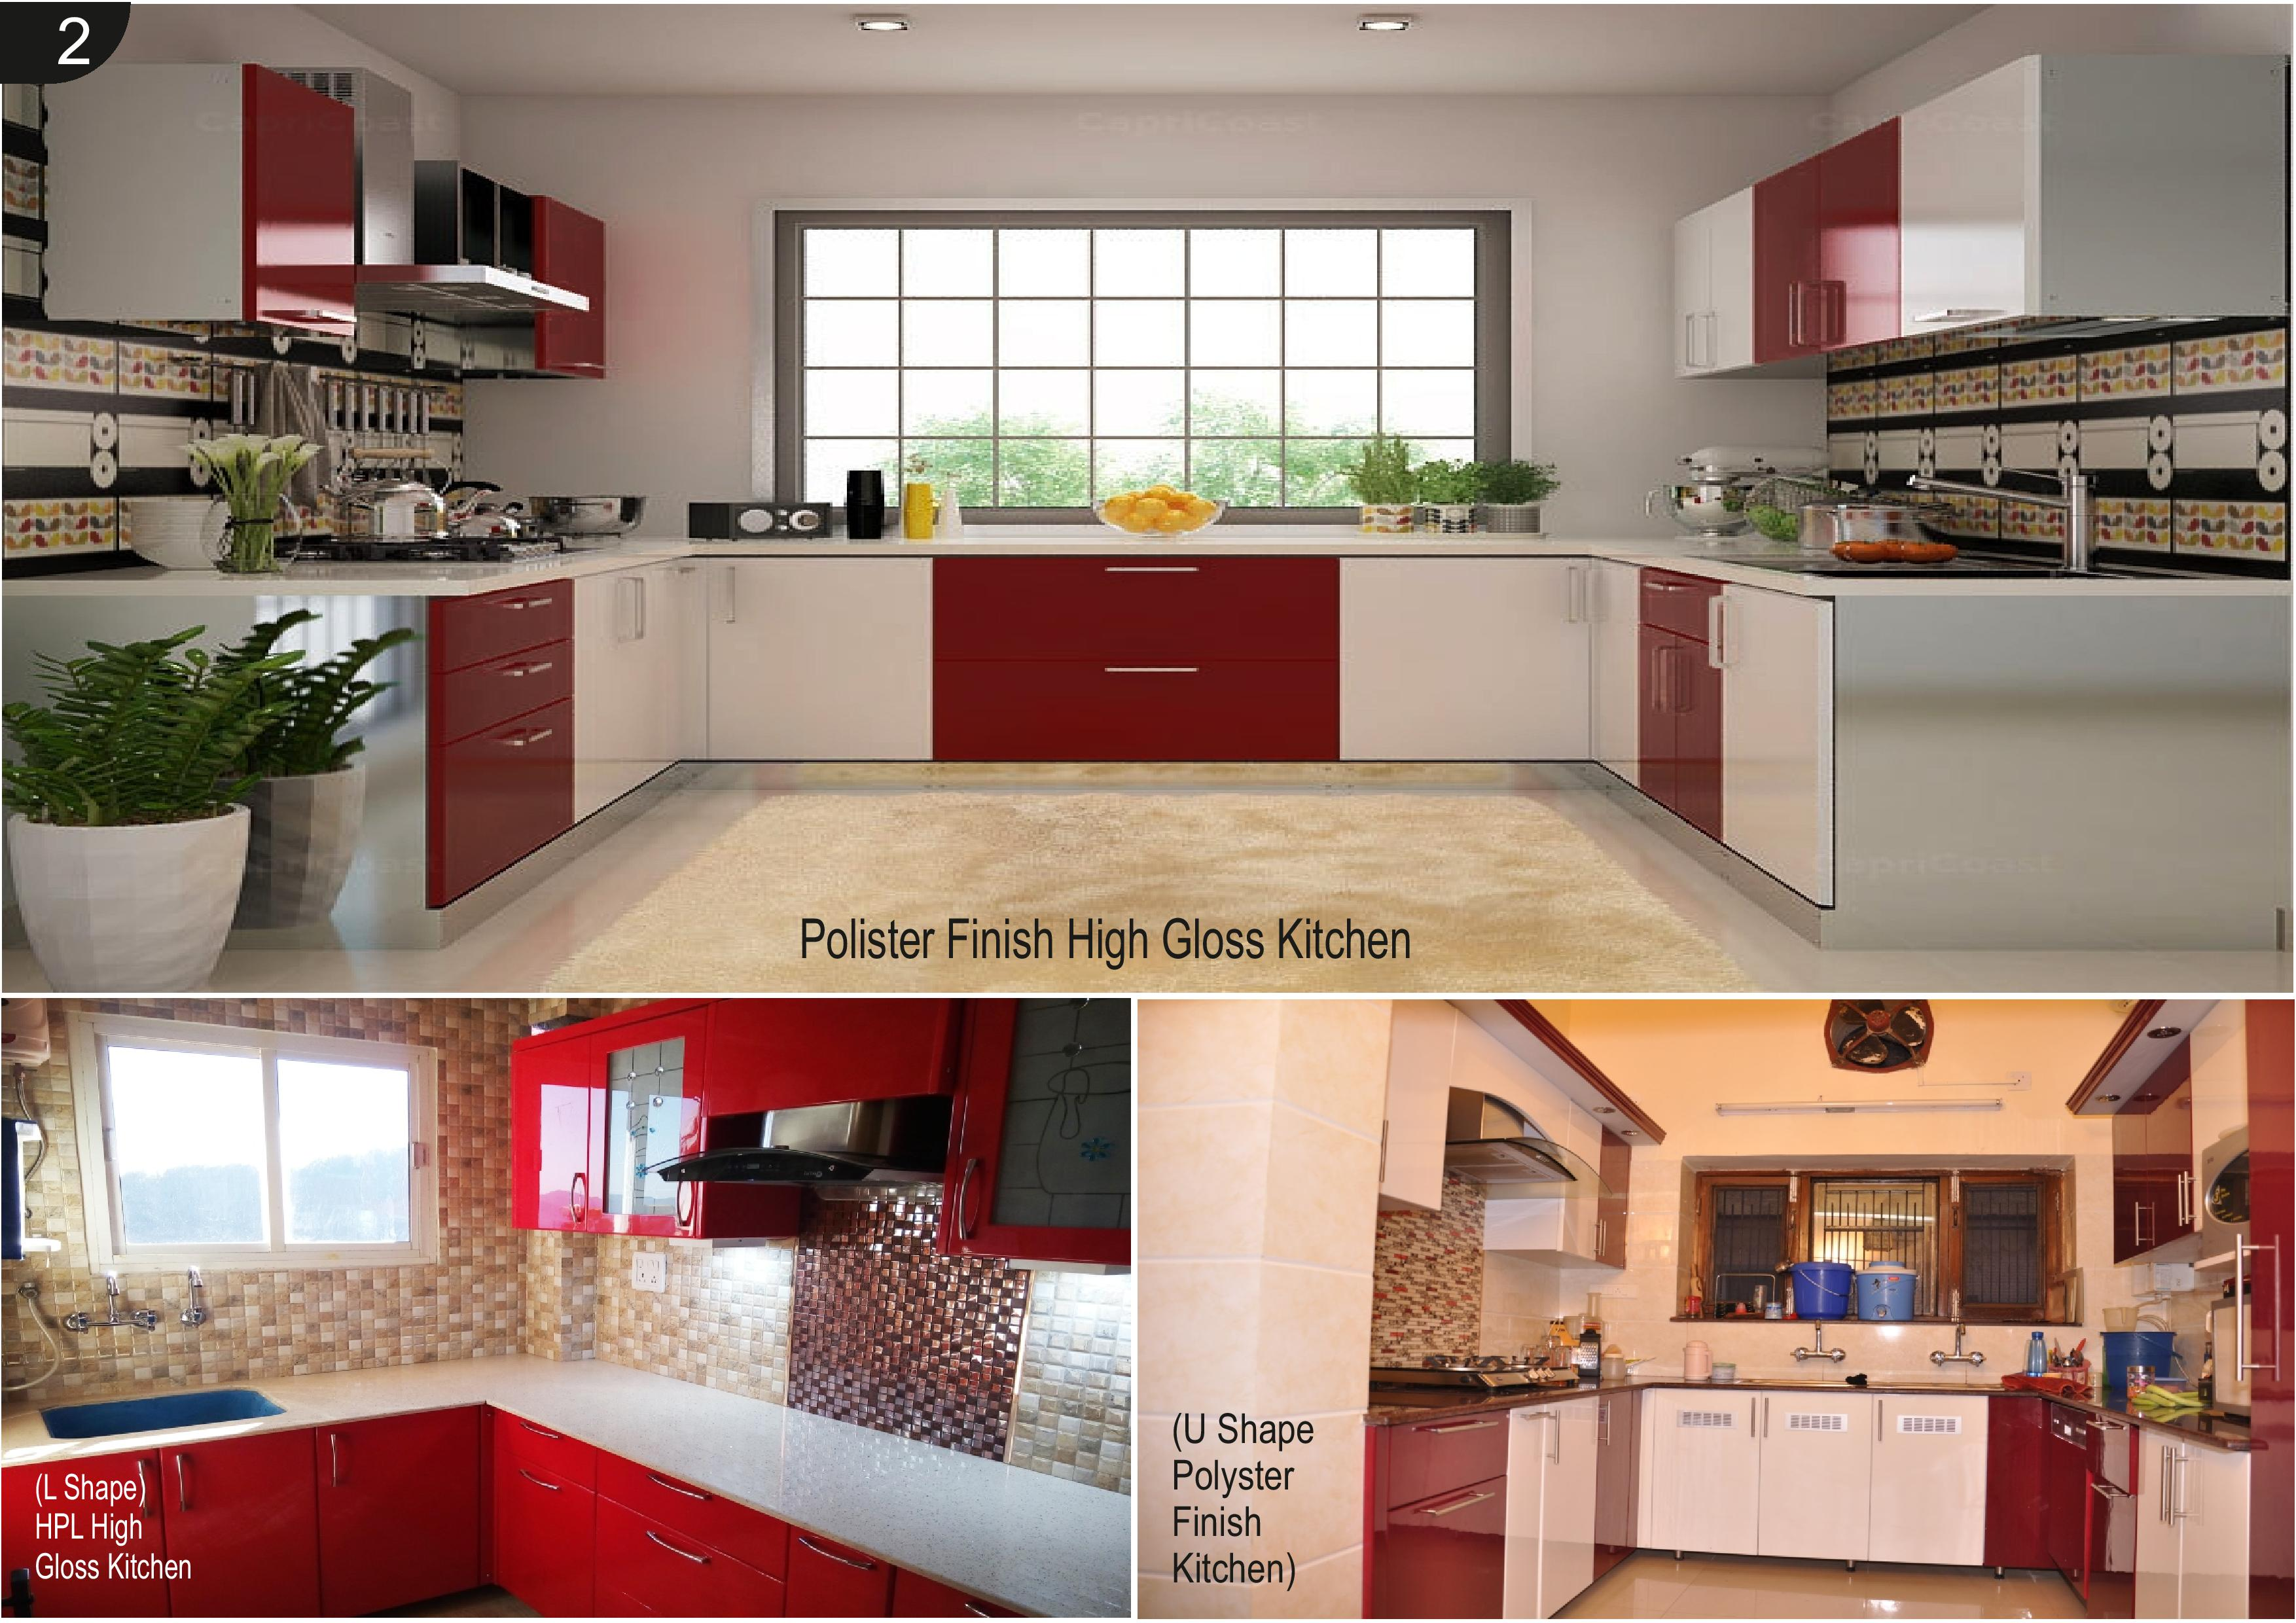 Modern Kitchen Design With Price Less Price Modular Kitchen In Chandigarh Mobile No 9216767577 By